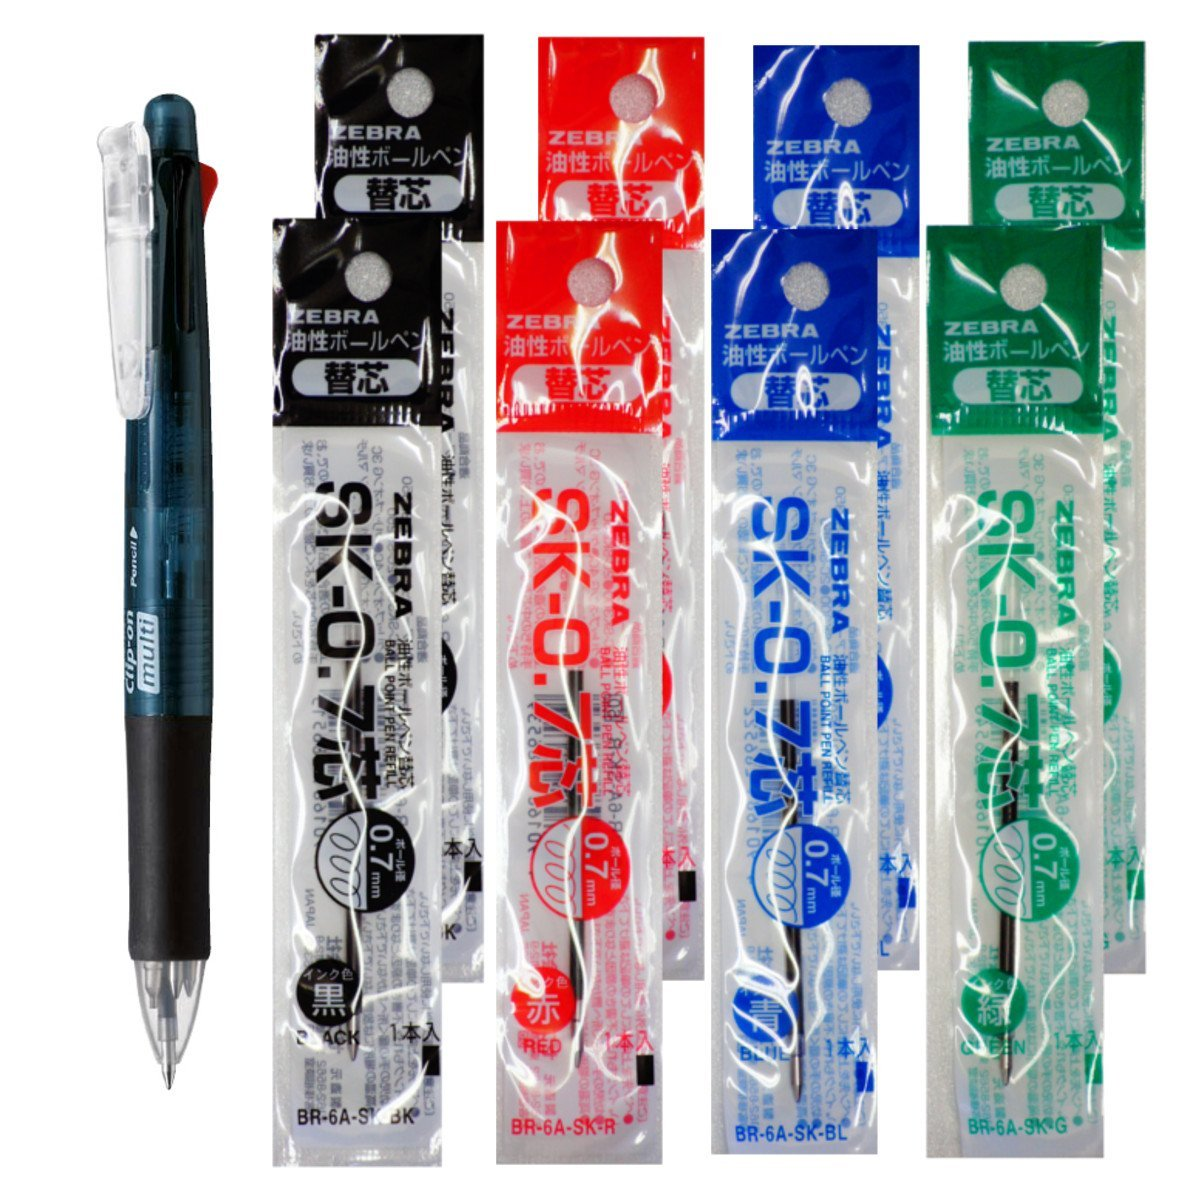 Zebra B4SA1 Black Pen + SK-0.7 Black, Blue, Red and Green 0.7mm Refills (8pcs) - Assorted [B4SA1_8-SK-0.7]